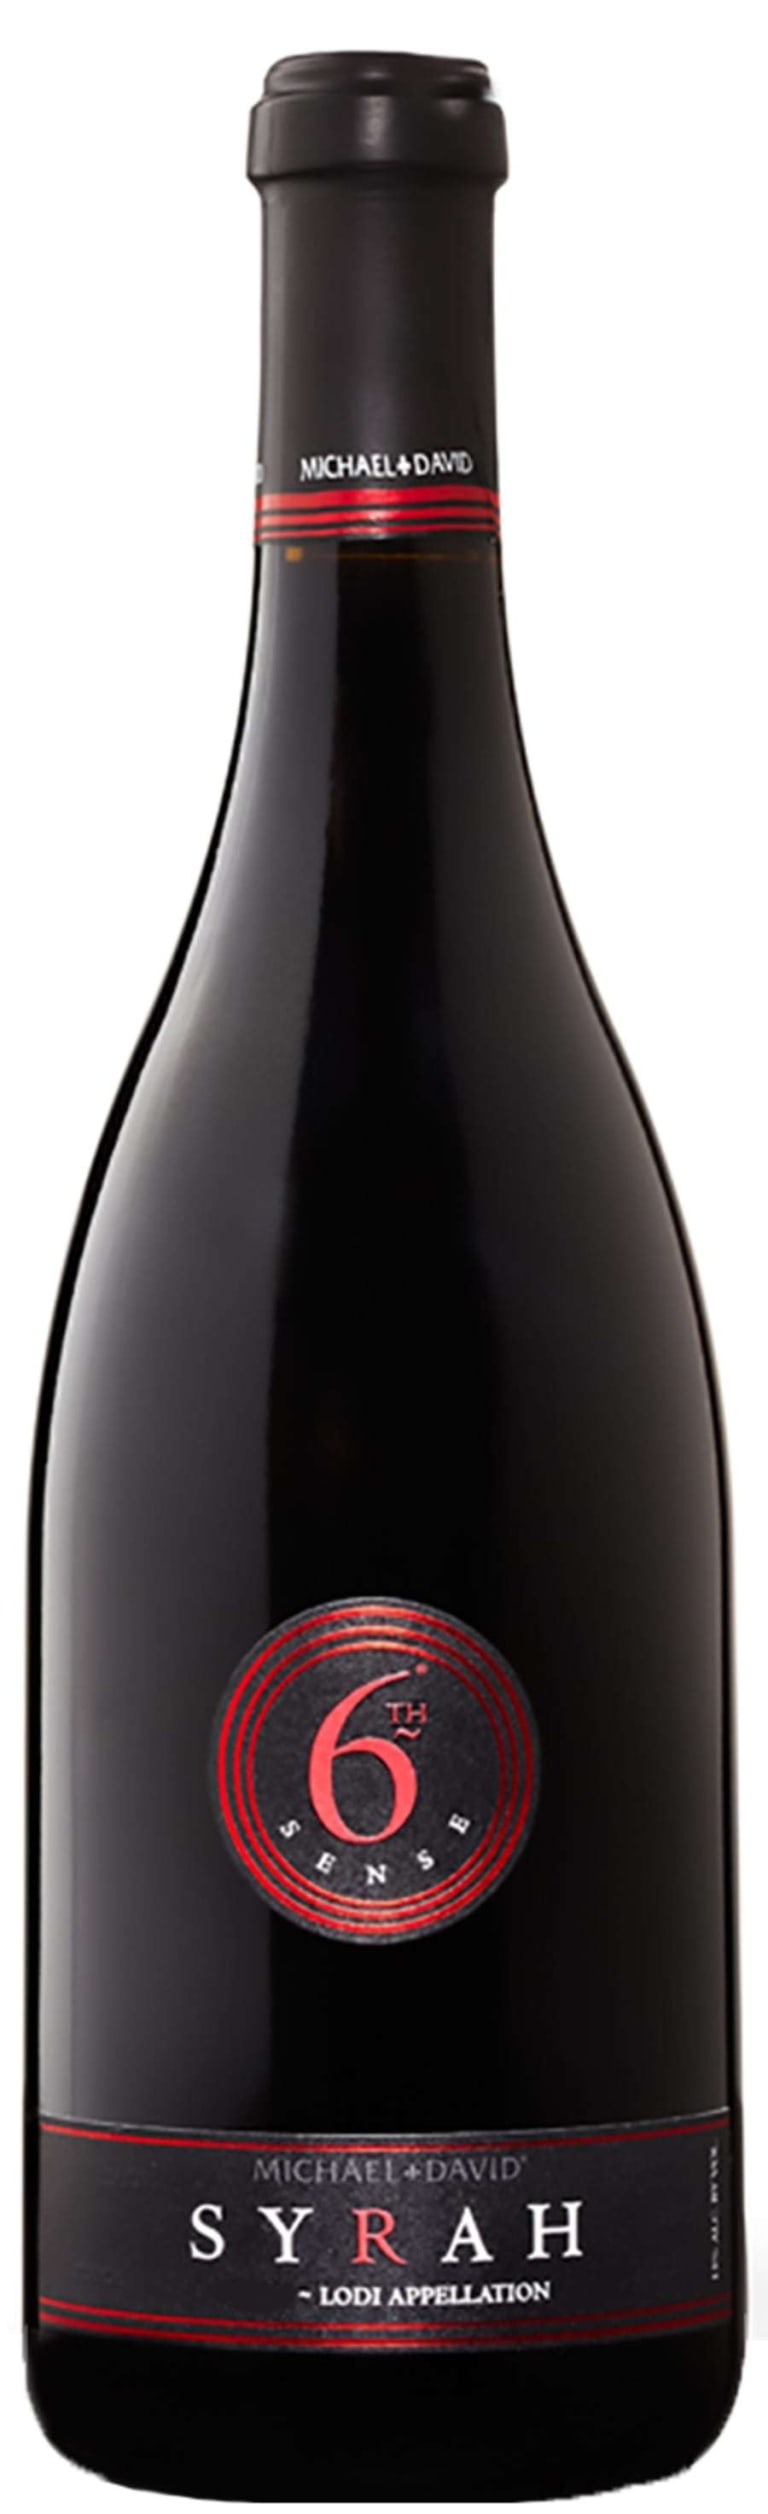 Michael David Syrah 6Th Sense 2016